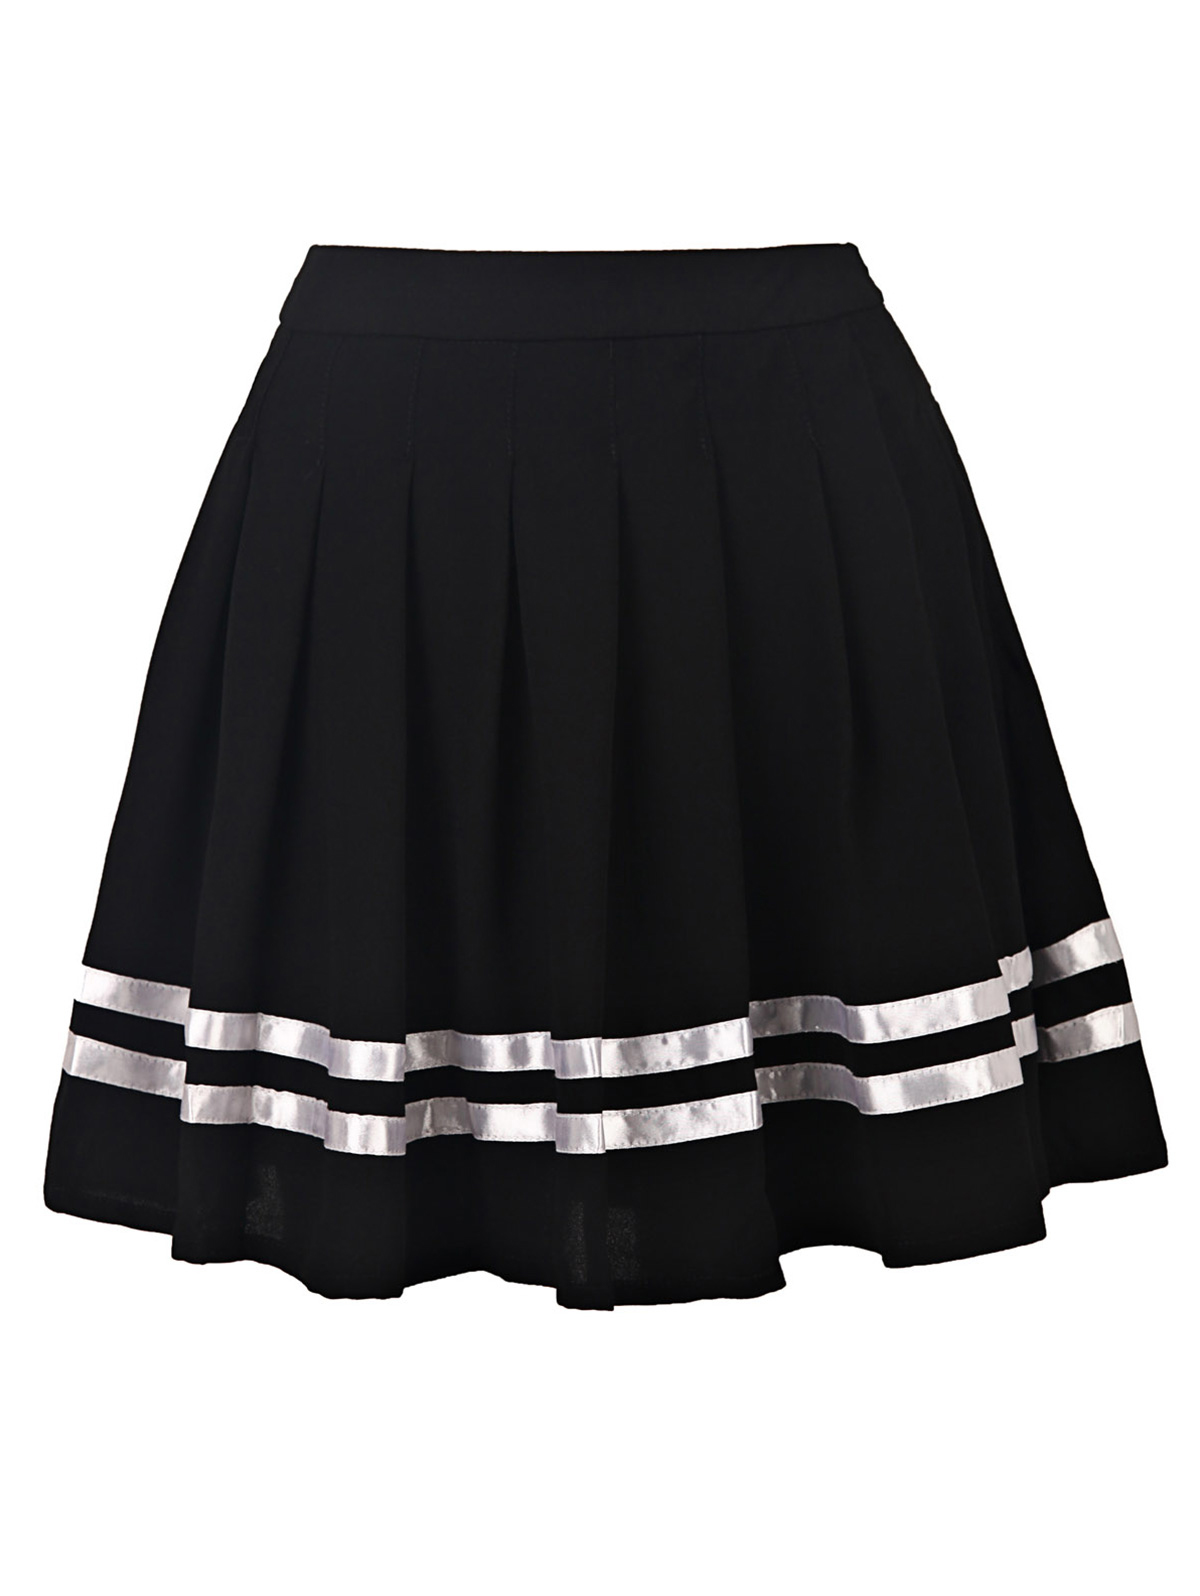 Find great deals on eBay for high waist pleated skirt. Shop with confidence.